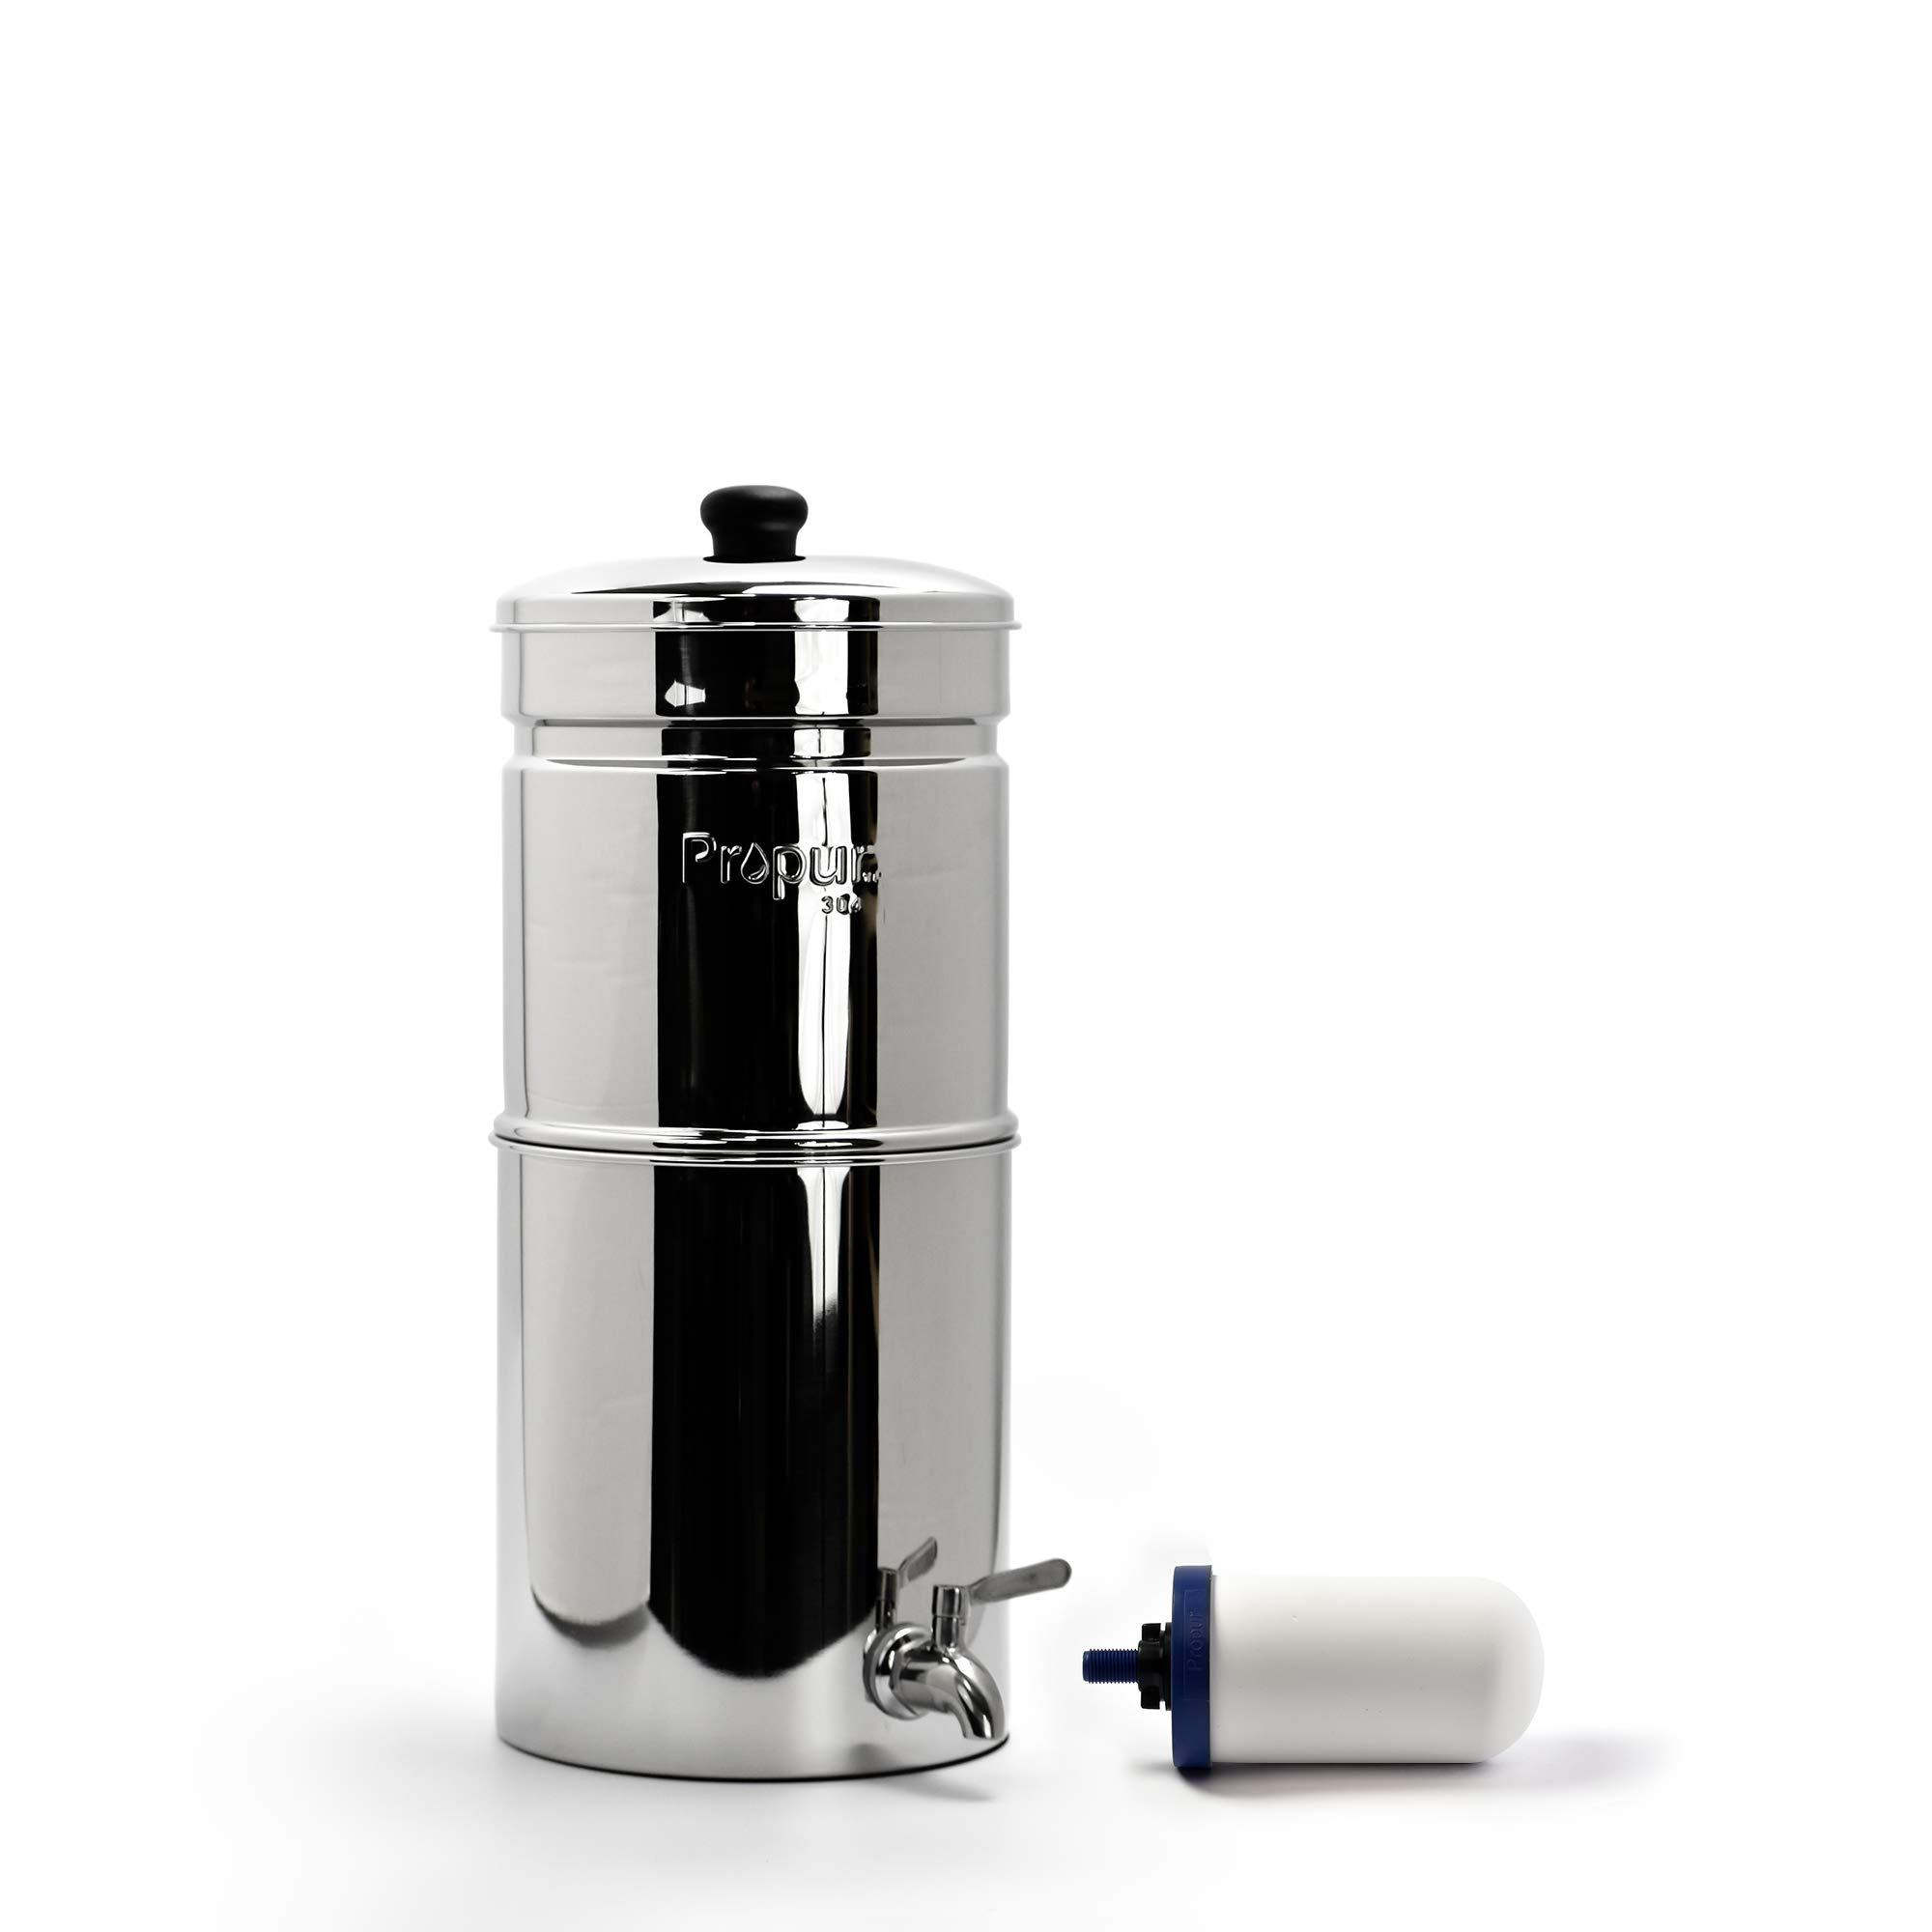 ProPur King Stainless Steel Water Purification 2 of the New ProOne G 2.0 Filter Elements with Fluoride Removal